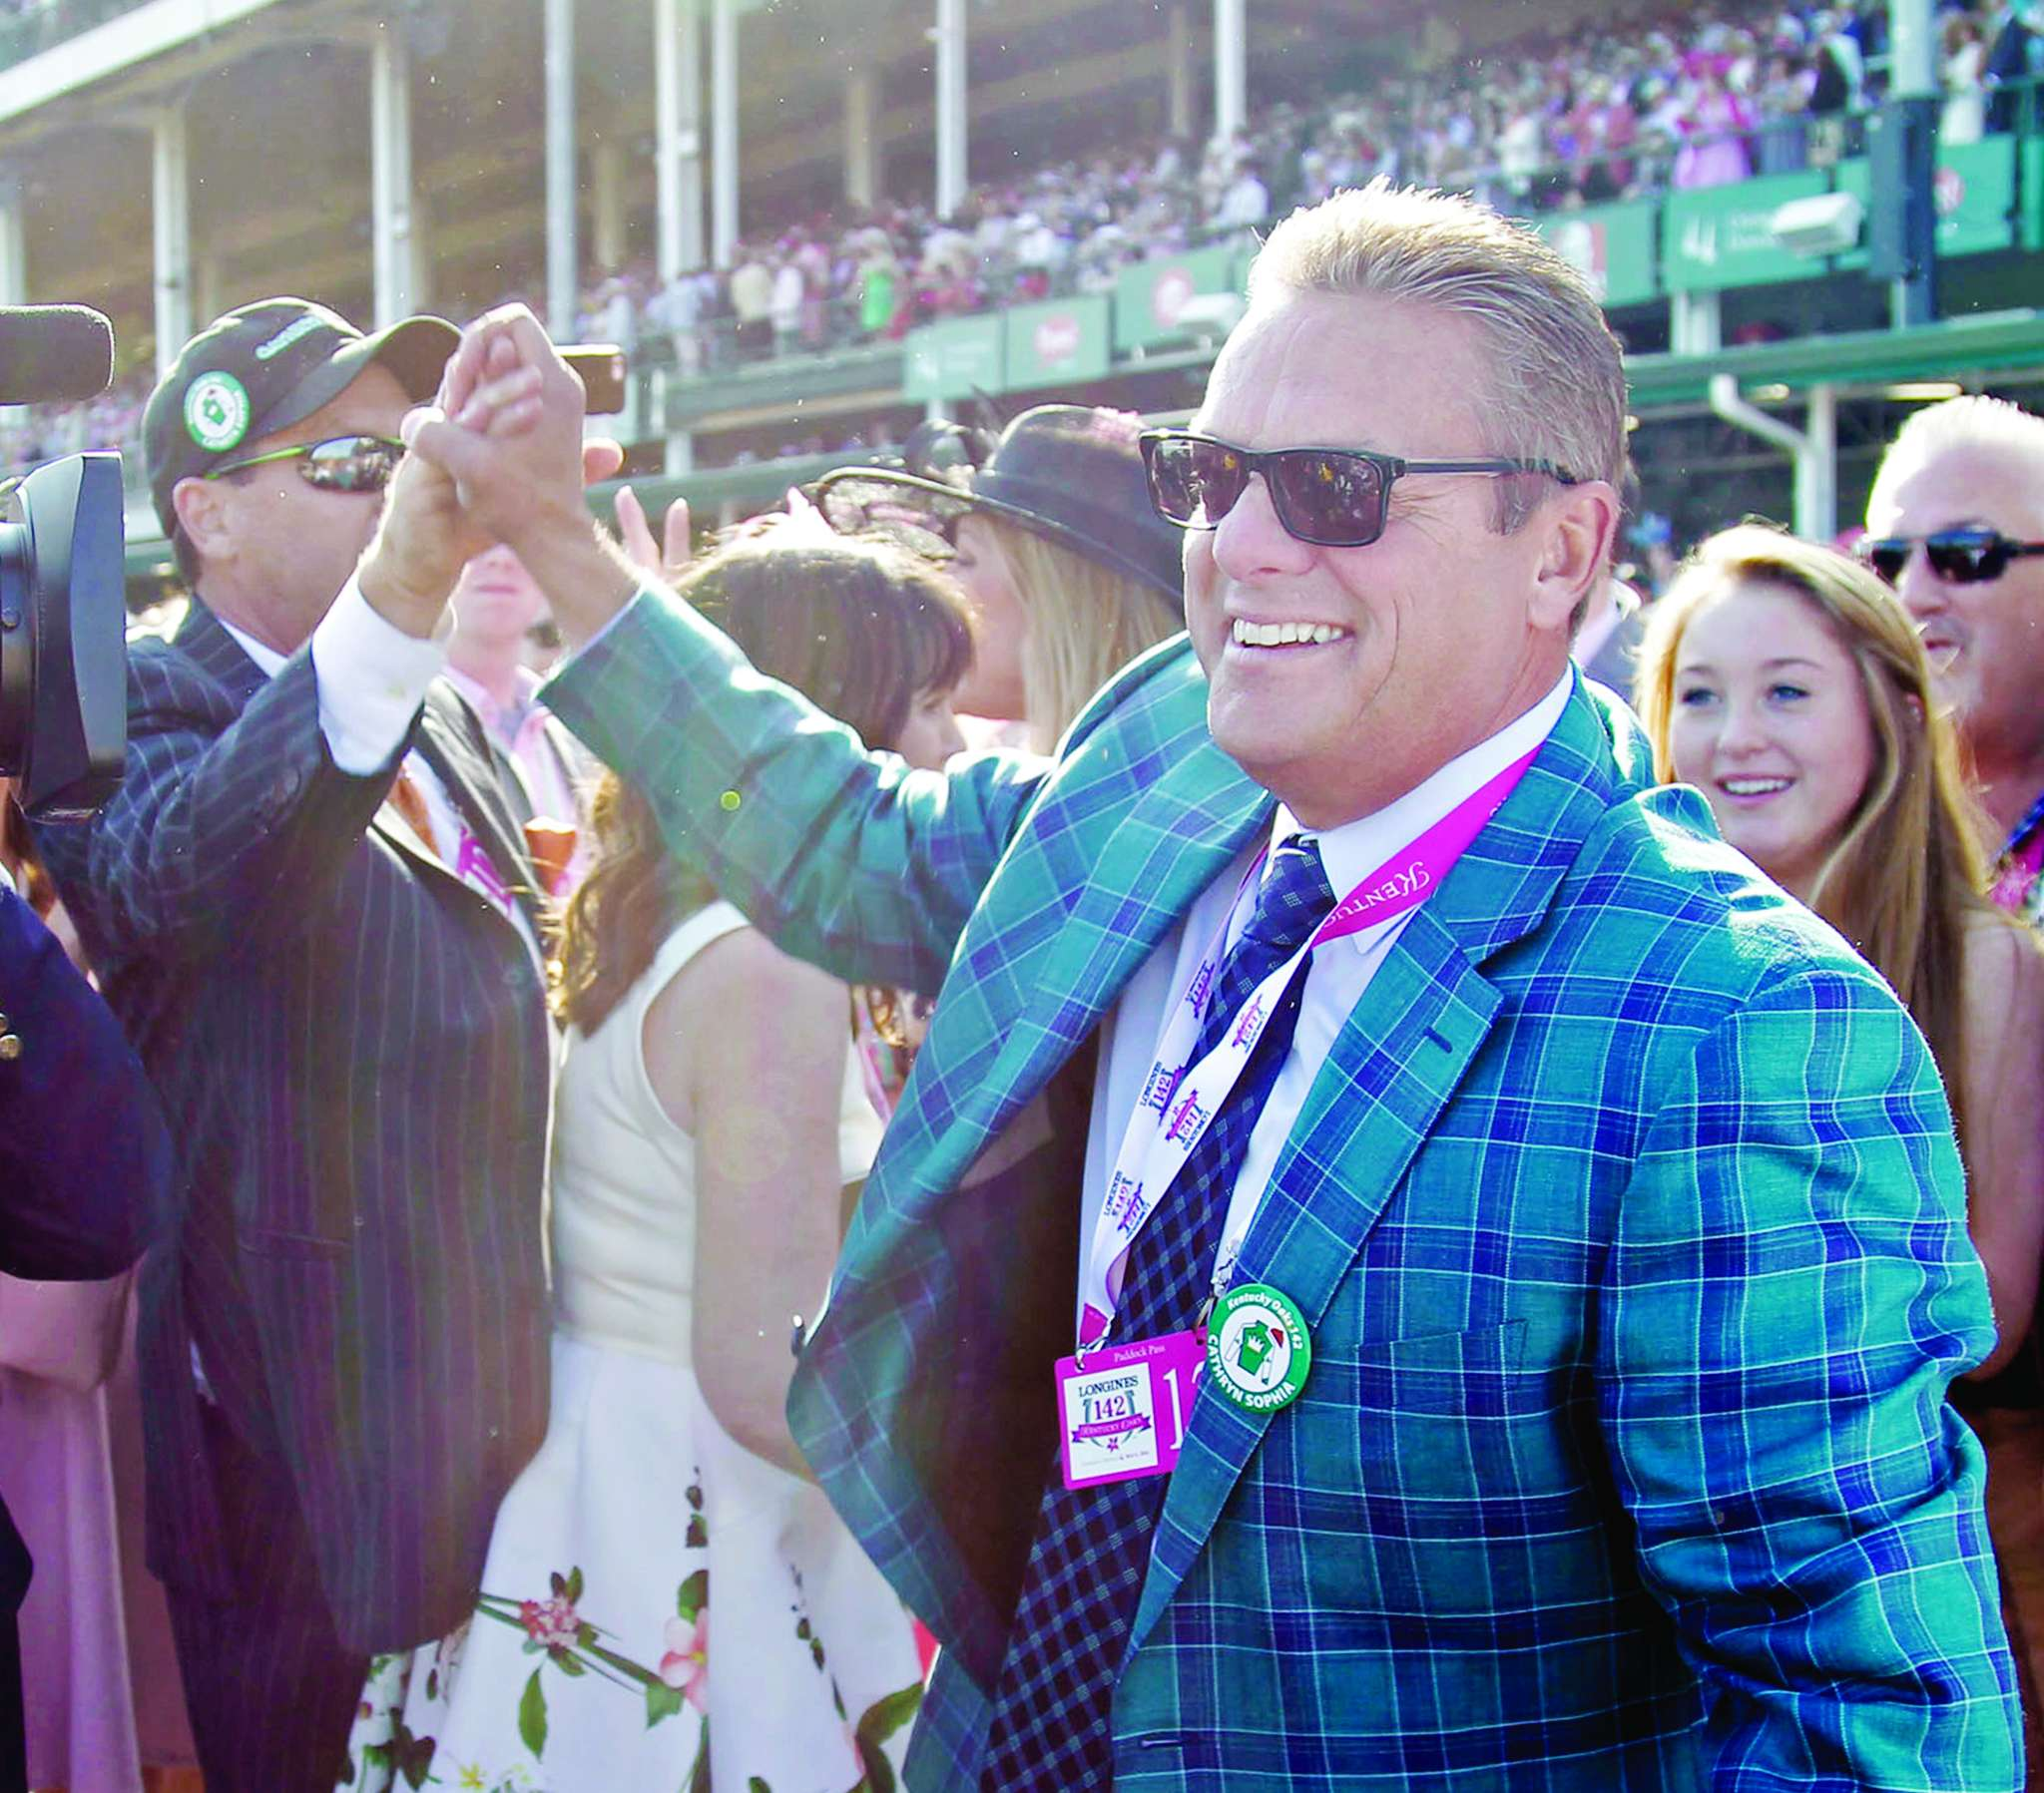 Trainer John Servis, under scrutiny after some of his horses tested positive for a drug banned for use during races, says he has nothing to hide. RON GARRISON / Lexington Herald-Leader